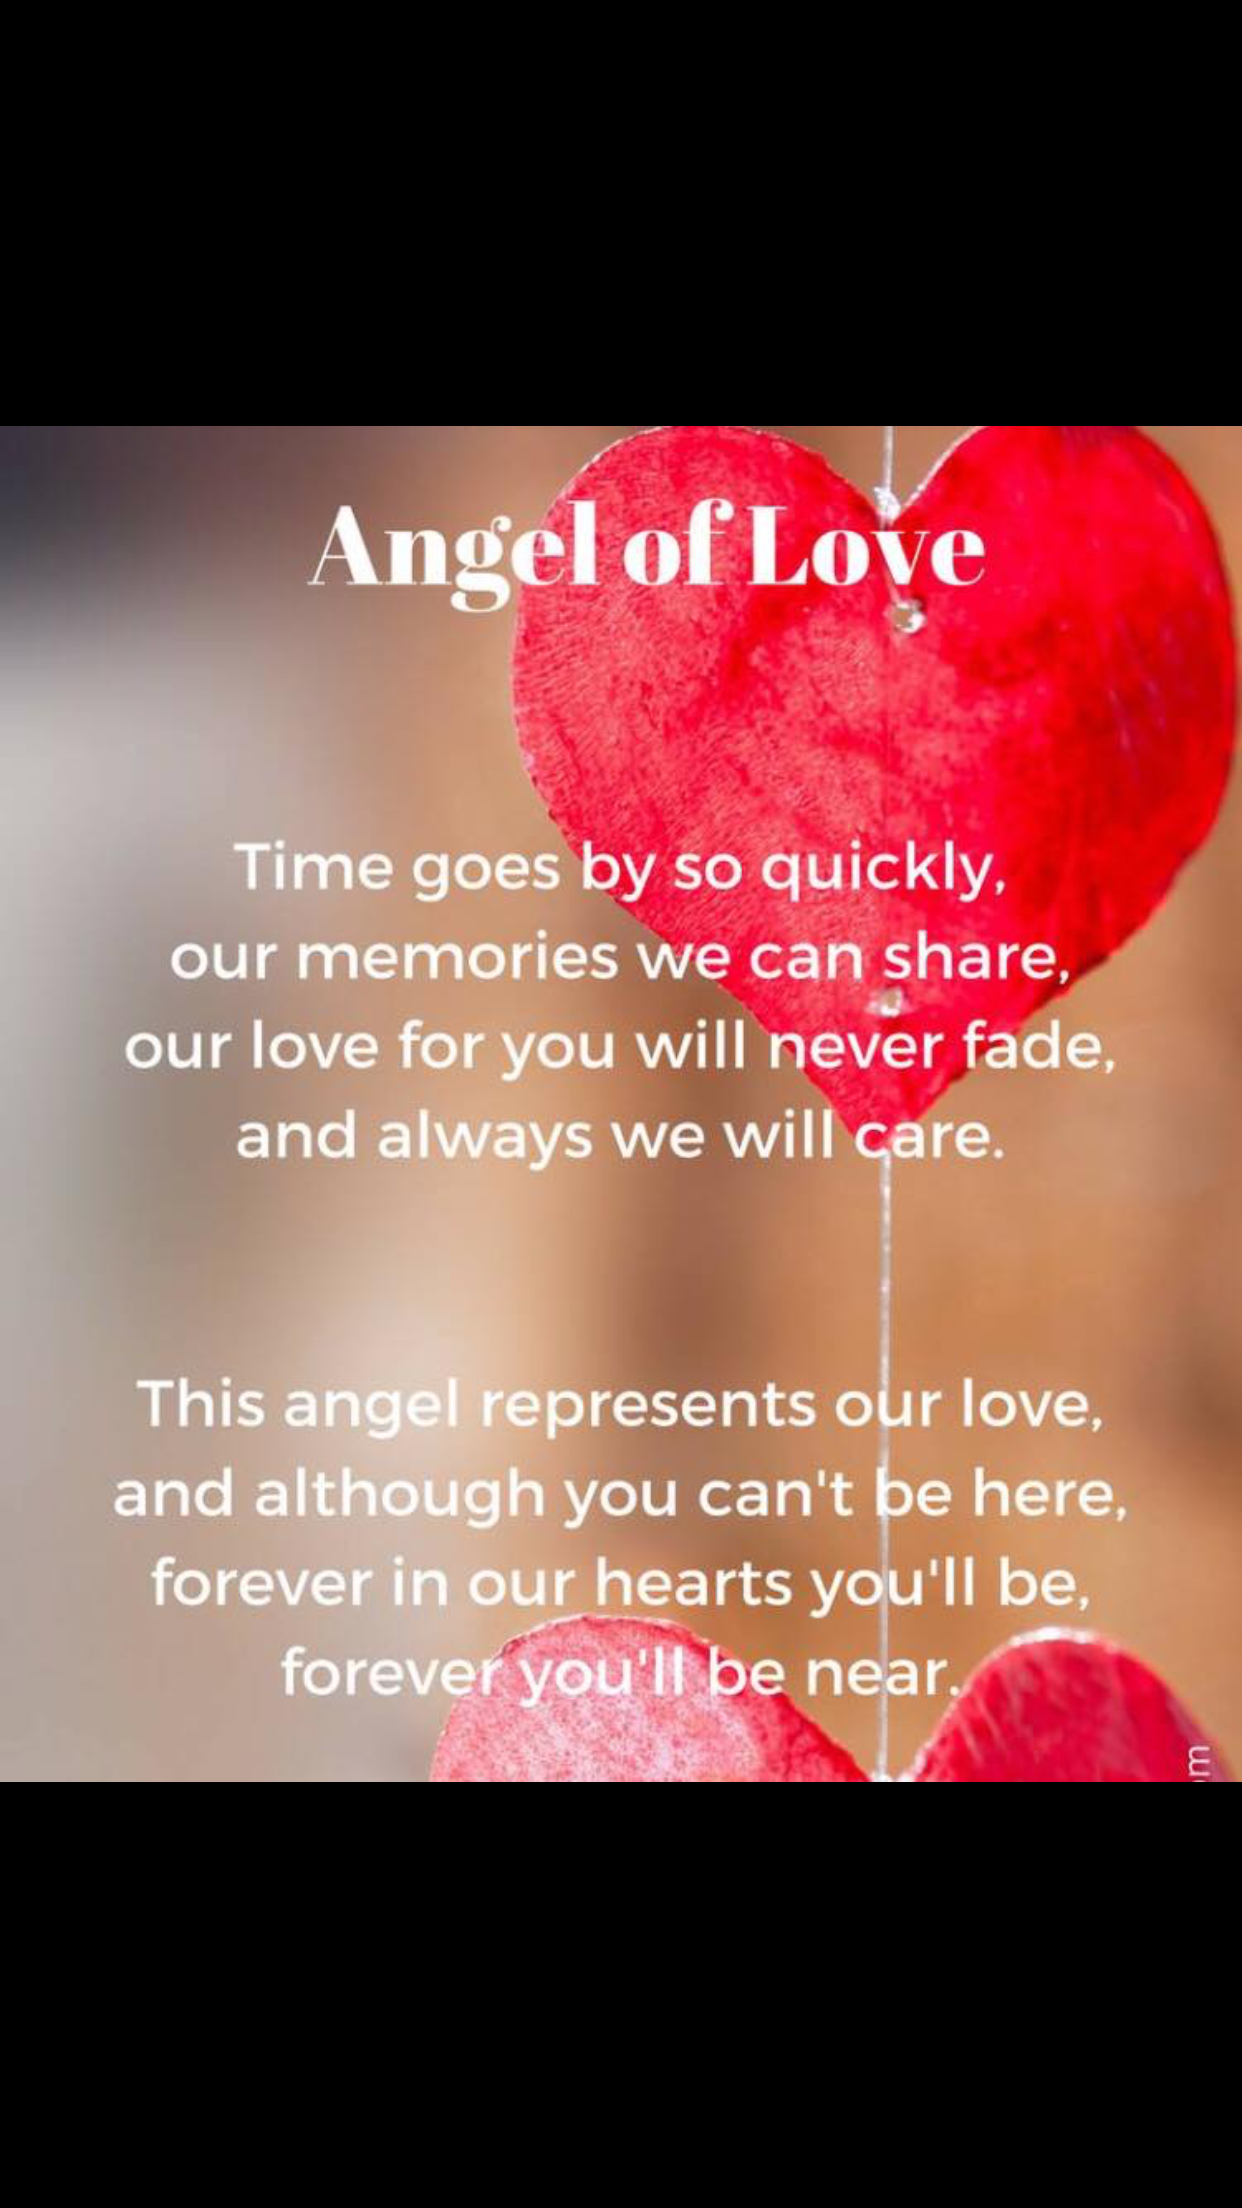 For My Wife Linda Halemba Who Died August 2nd 2018 My Heart Breaks